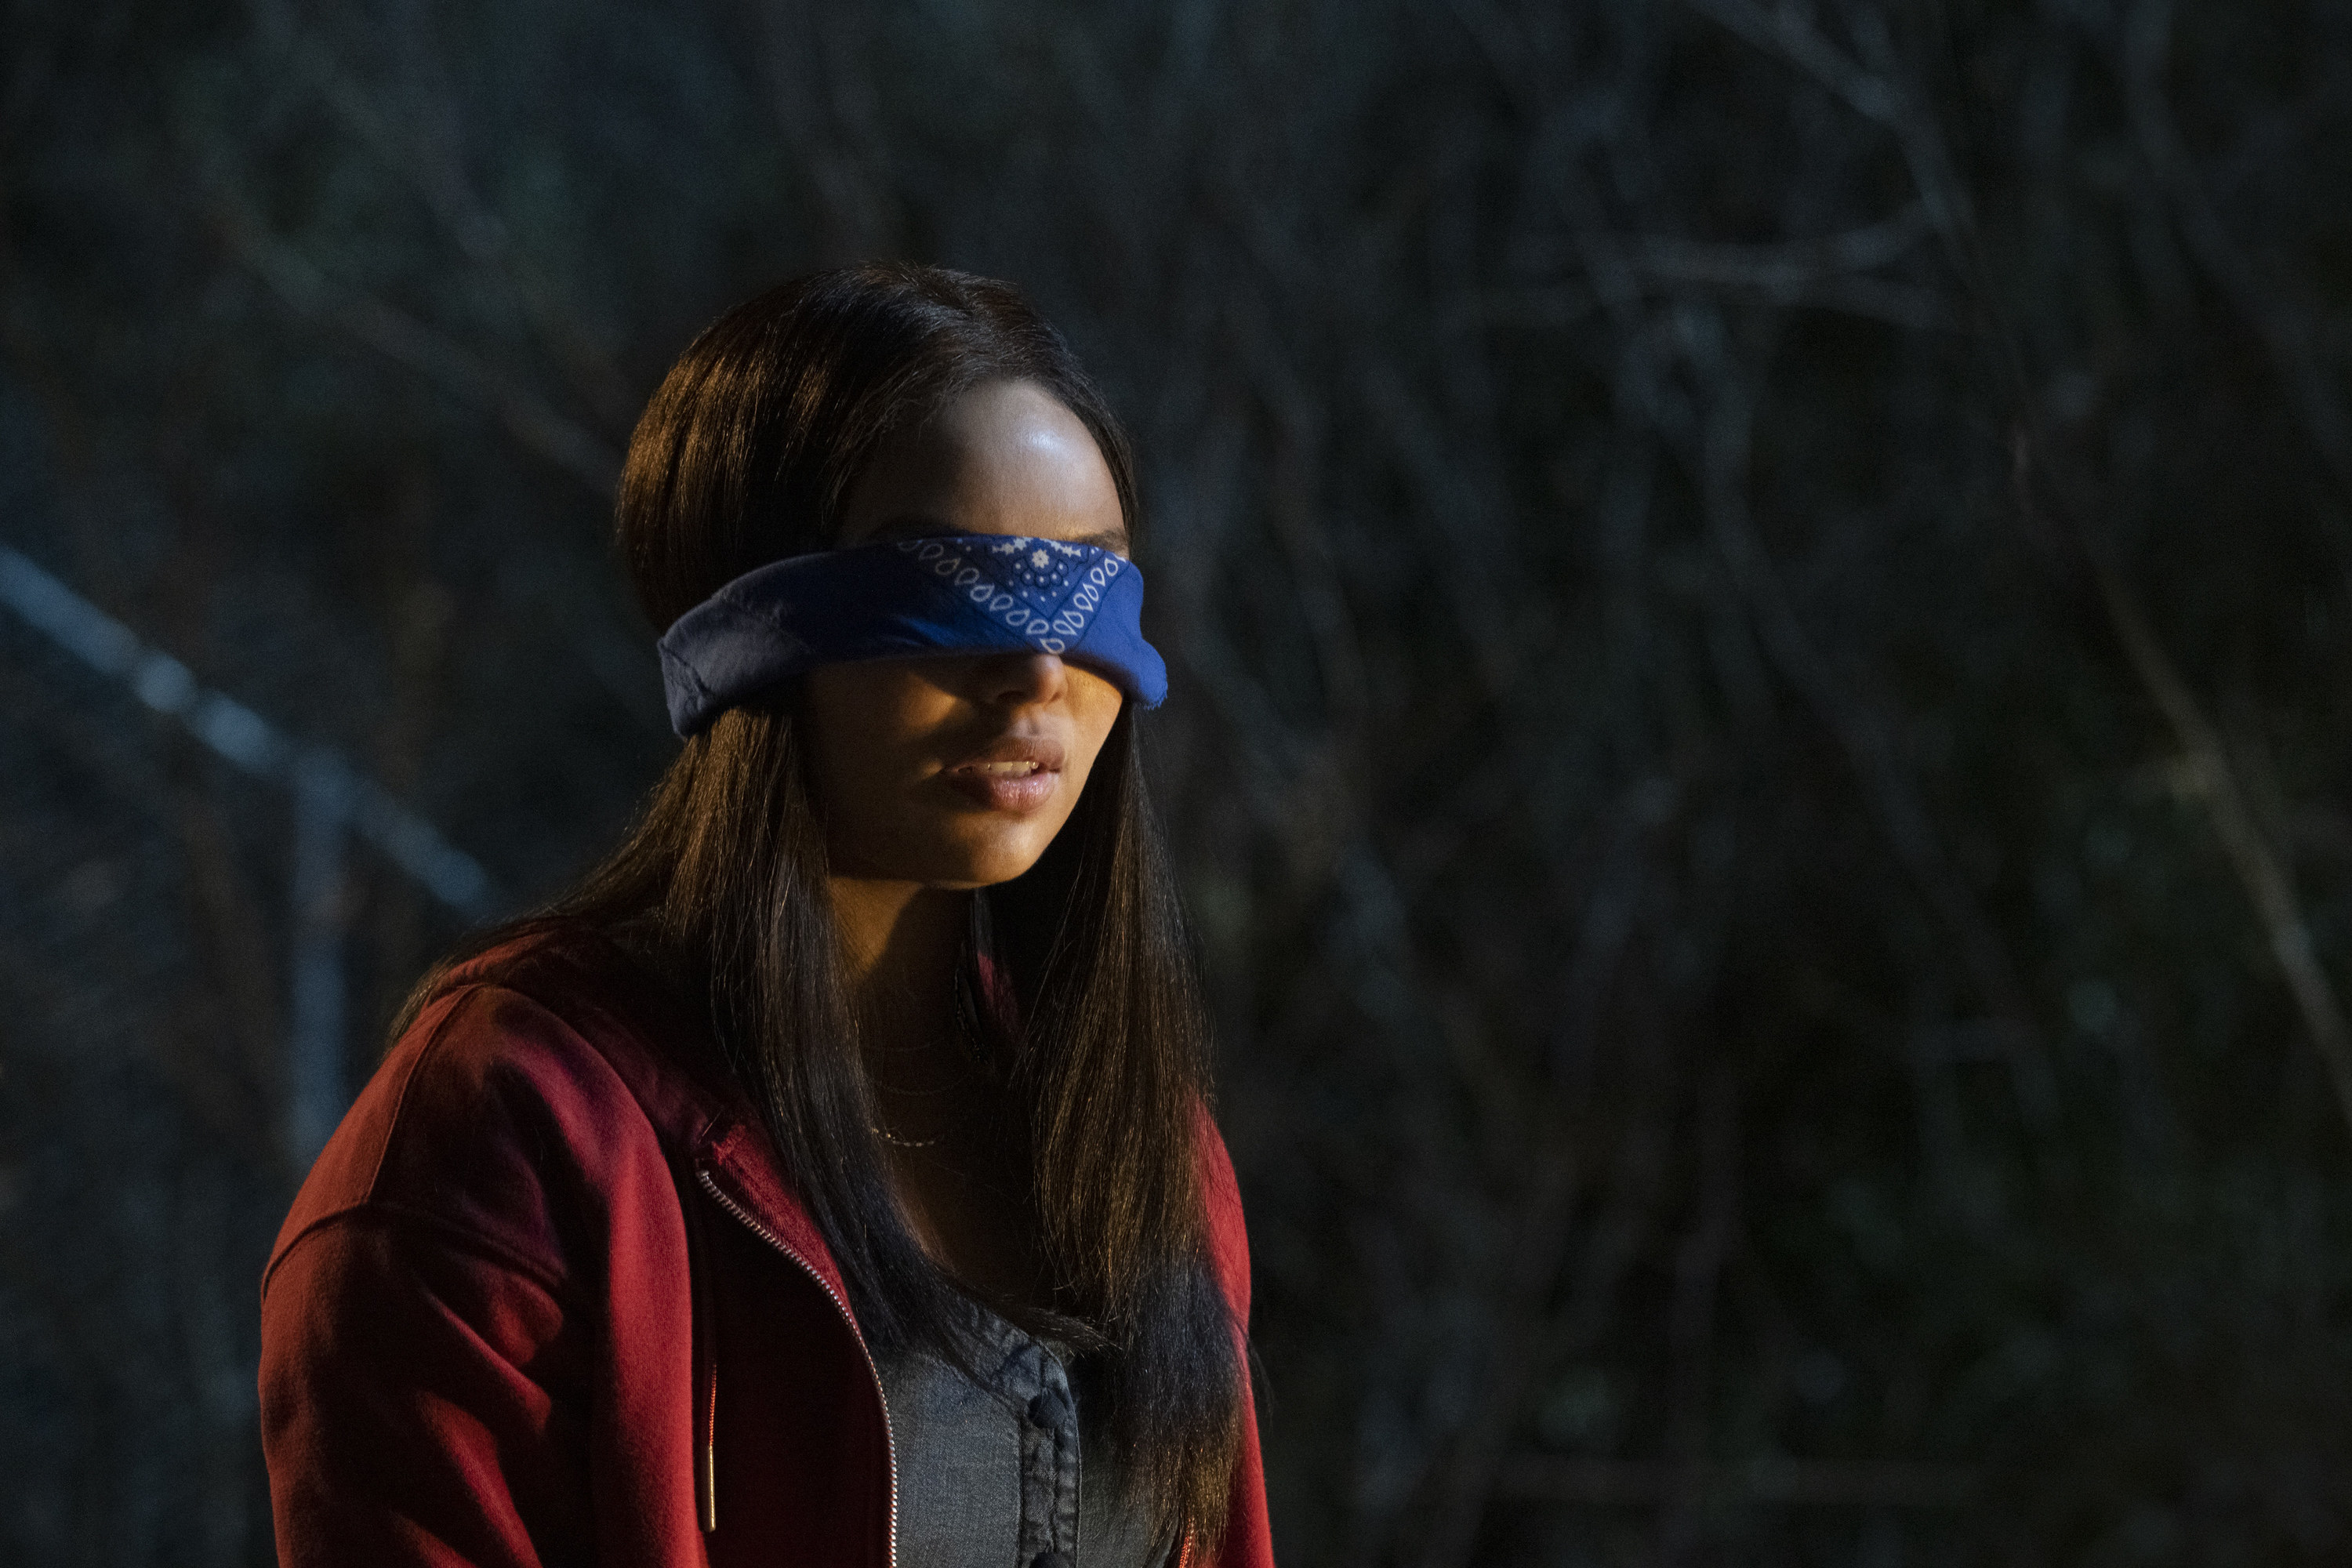 image of actor Jessica Sula who plays Natalie Williams blindfolded in a scene from the series panic